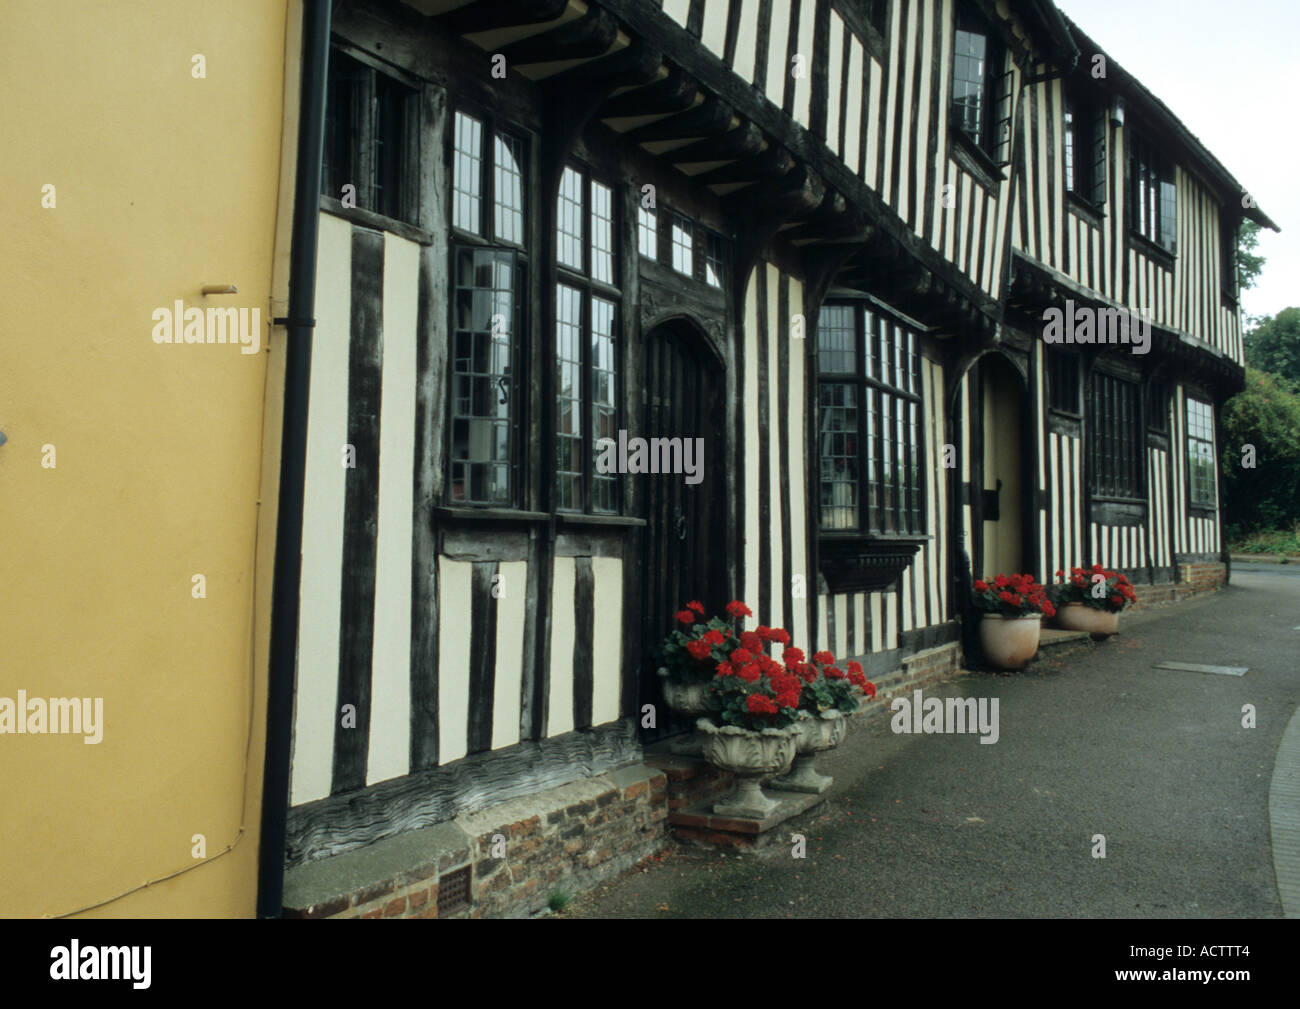 The old English village of Lavenham in Suffolk Uk - Stock Image